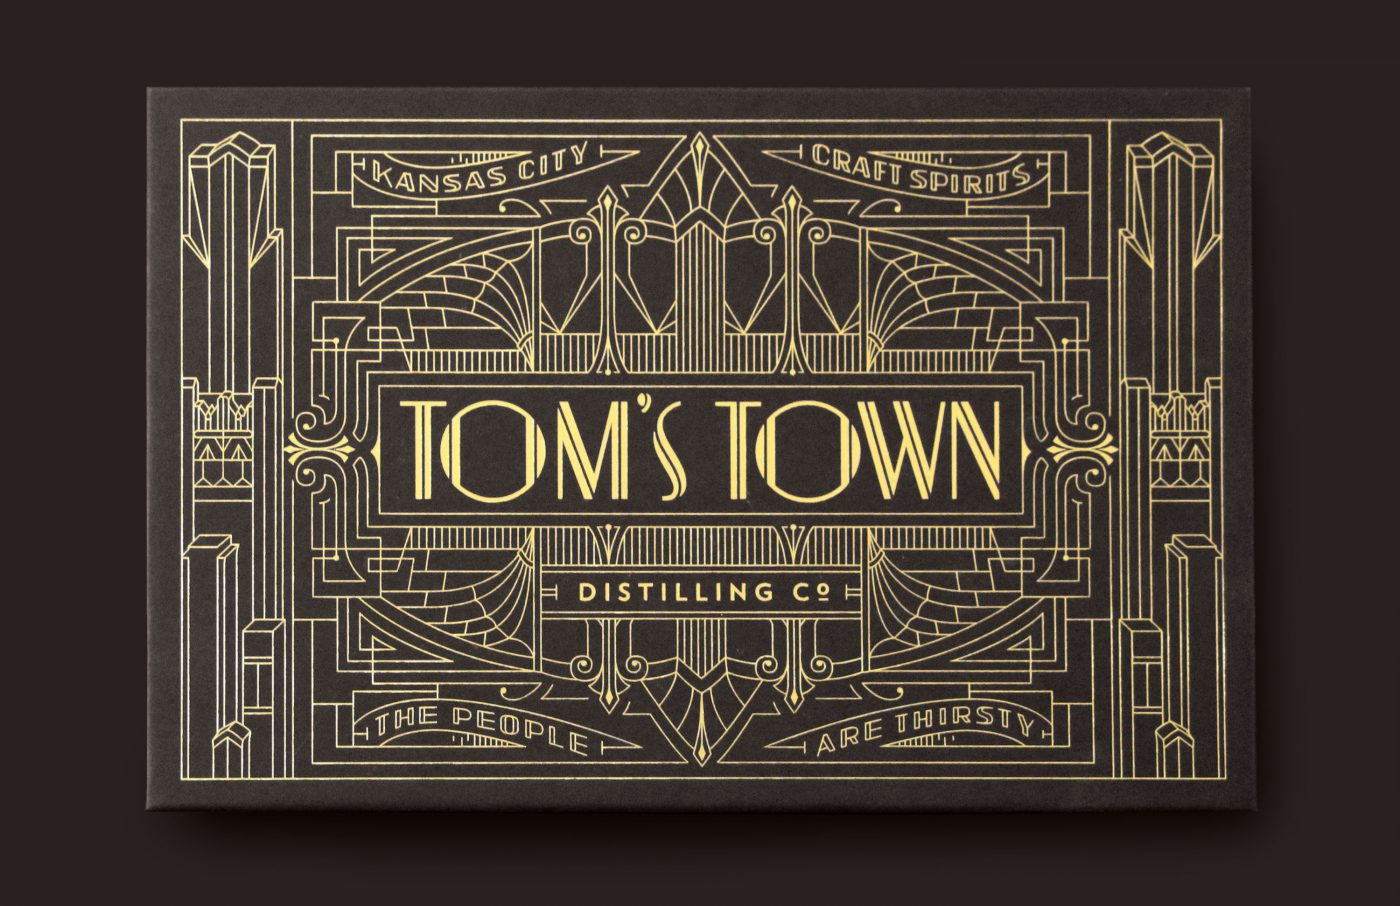 Tom S Town Kevin Cantrell Studio